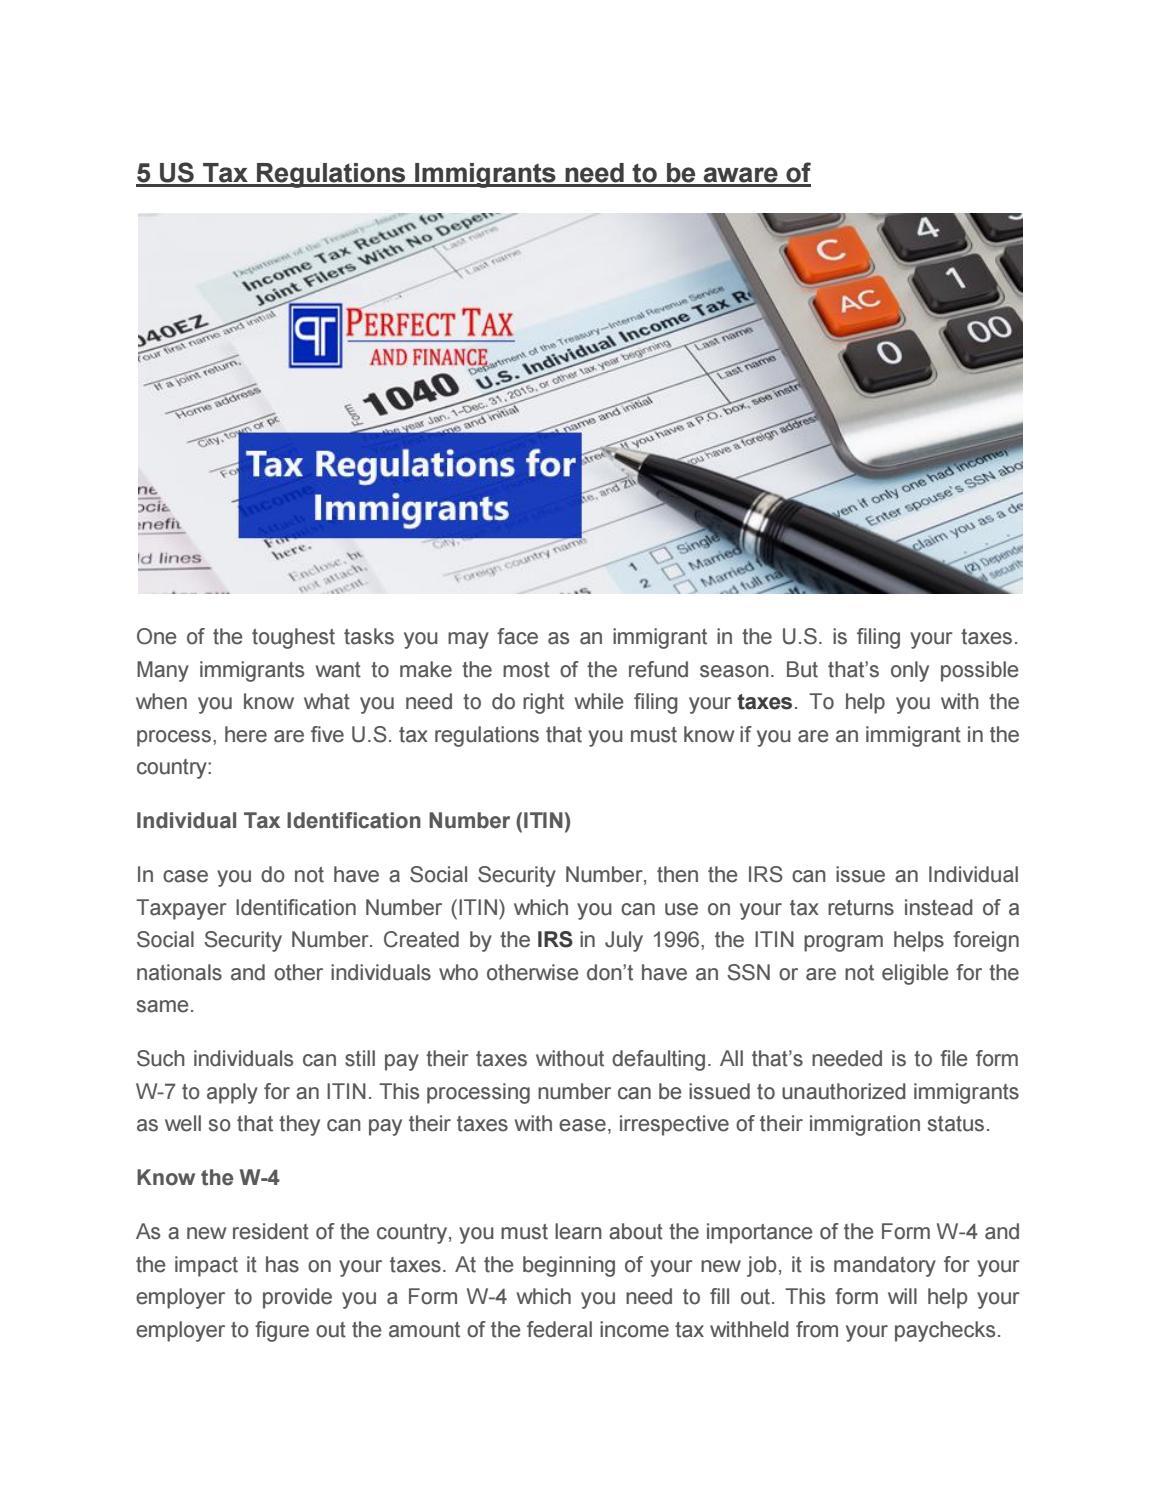 5 us tax regulations immigrants need to be aware of by